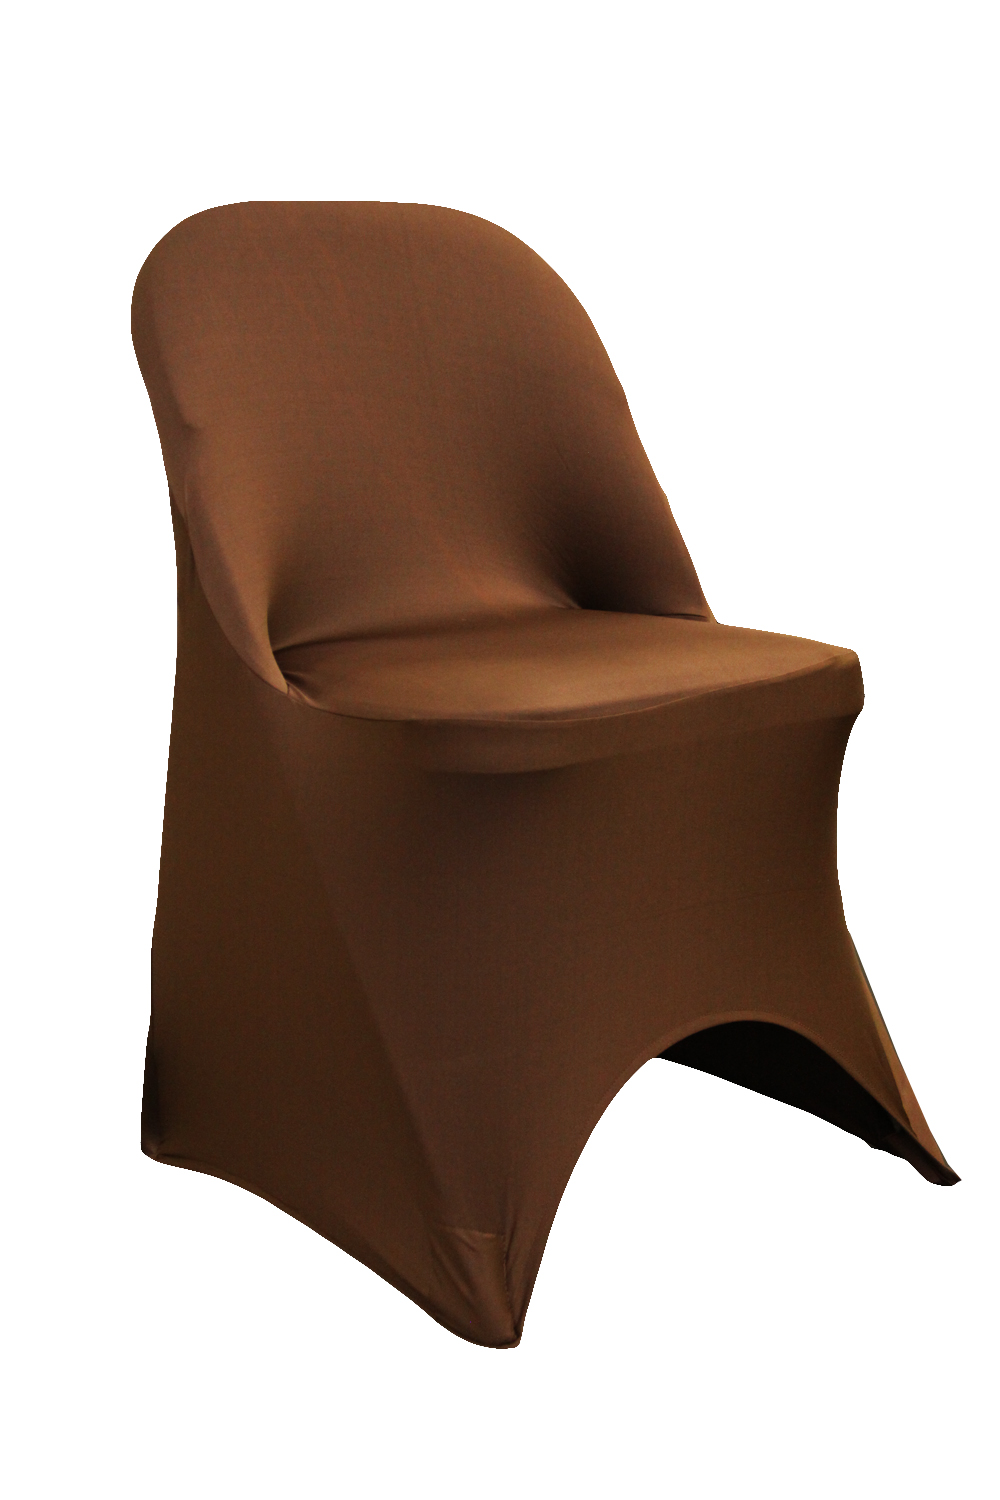 chair covers for folding chairs i folding chair covers for sale uk